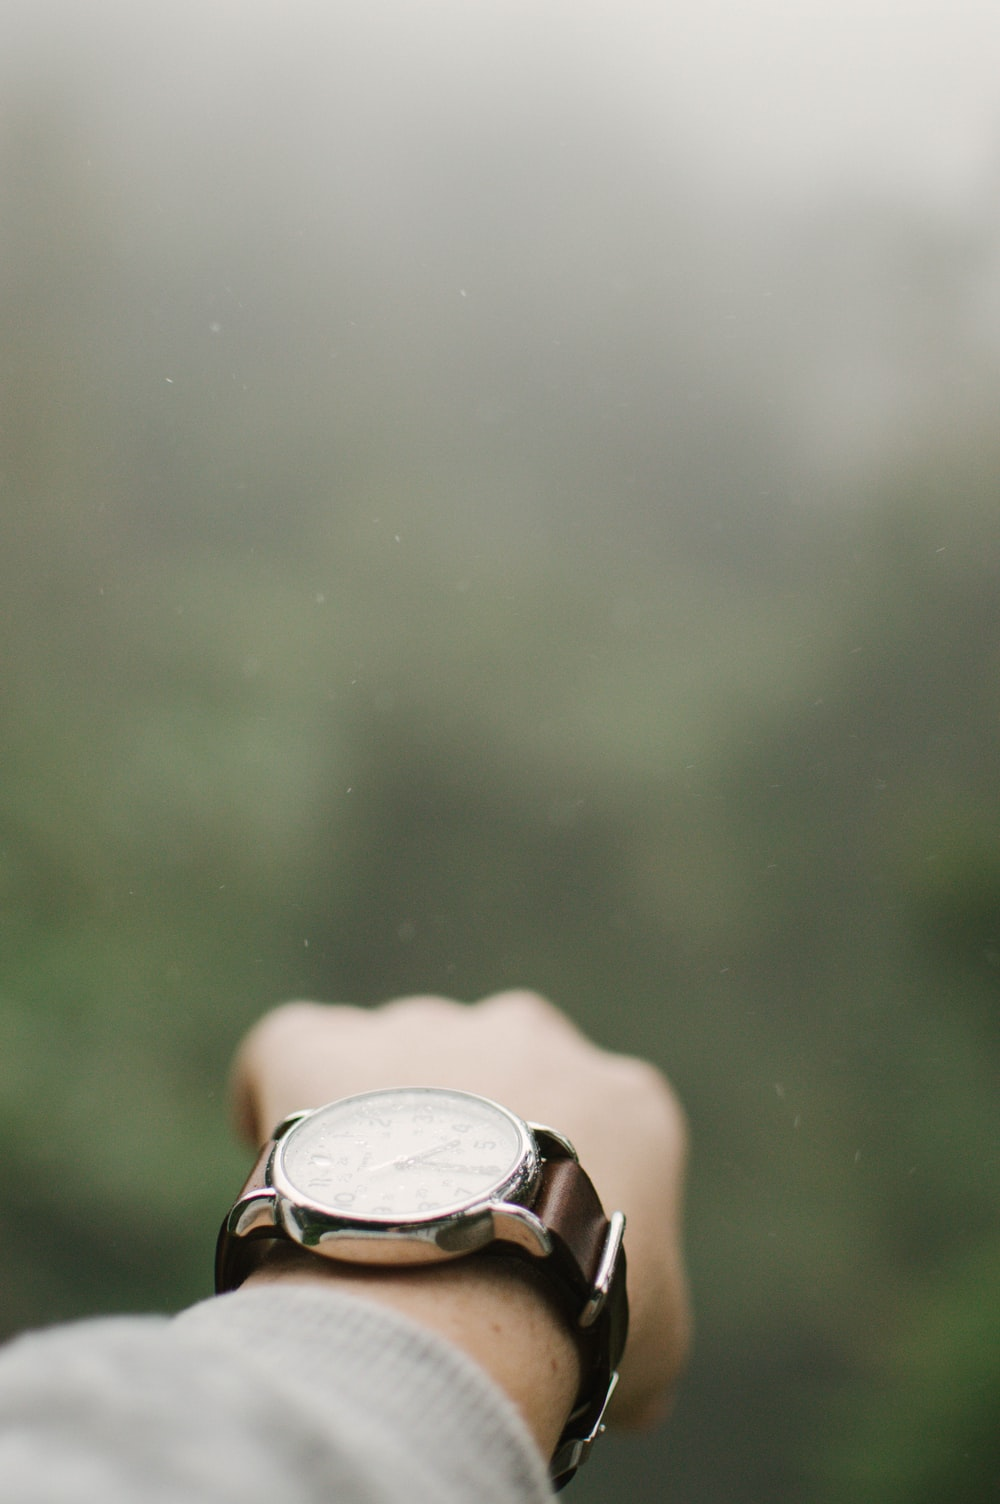 selective-focus photography of person wearing watch